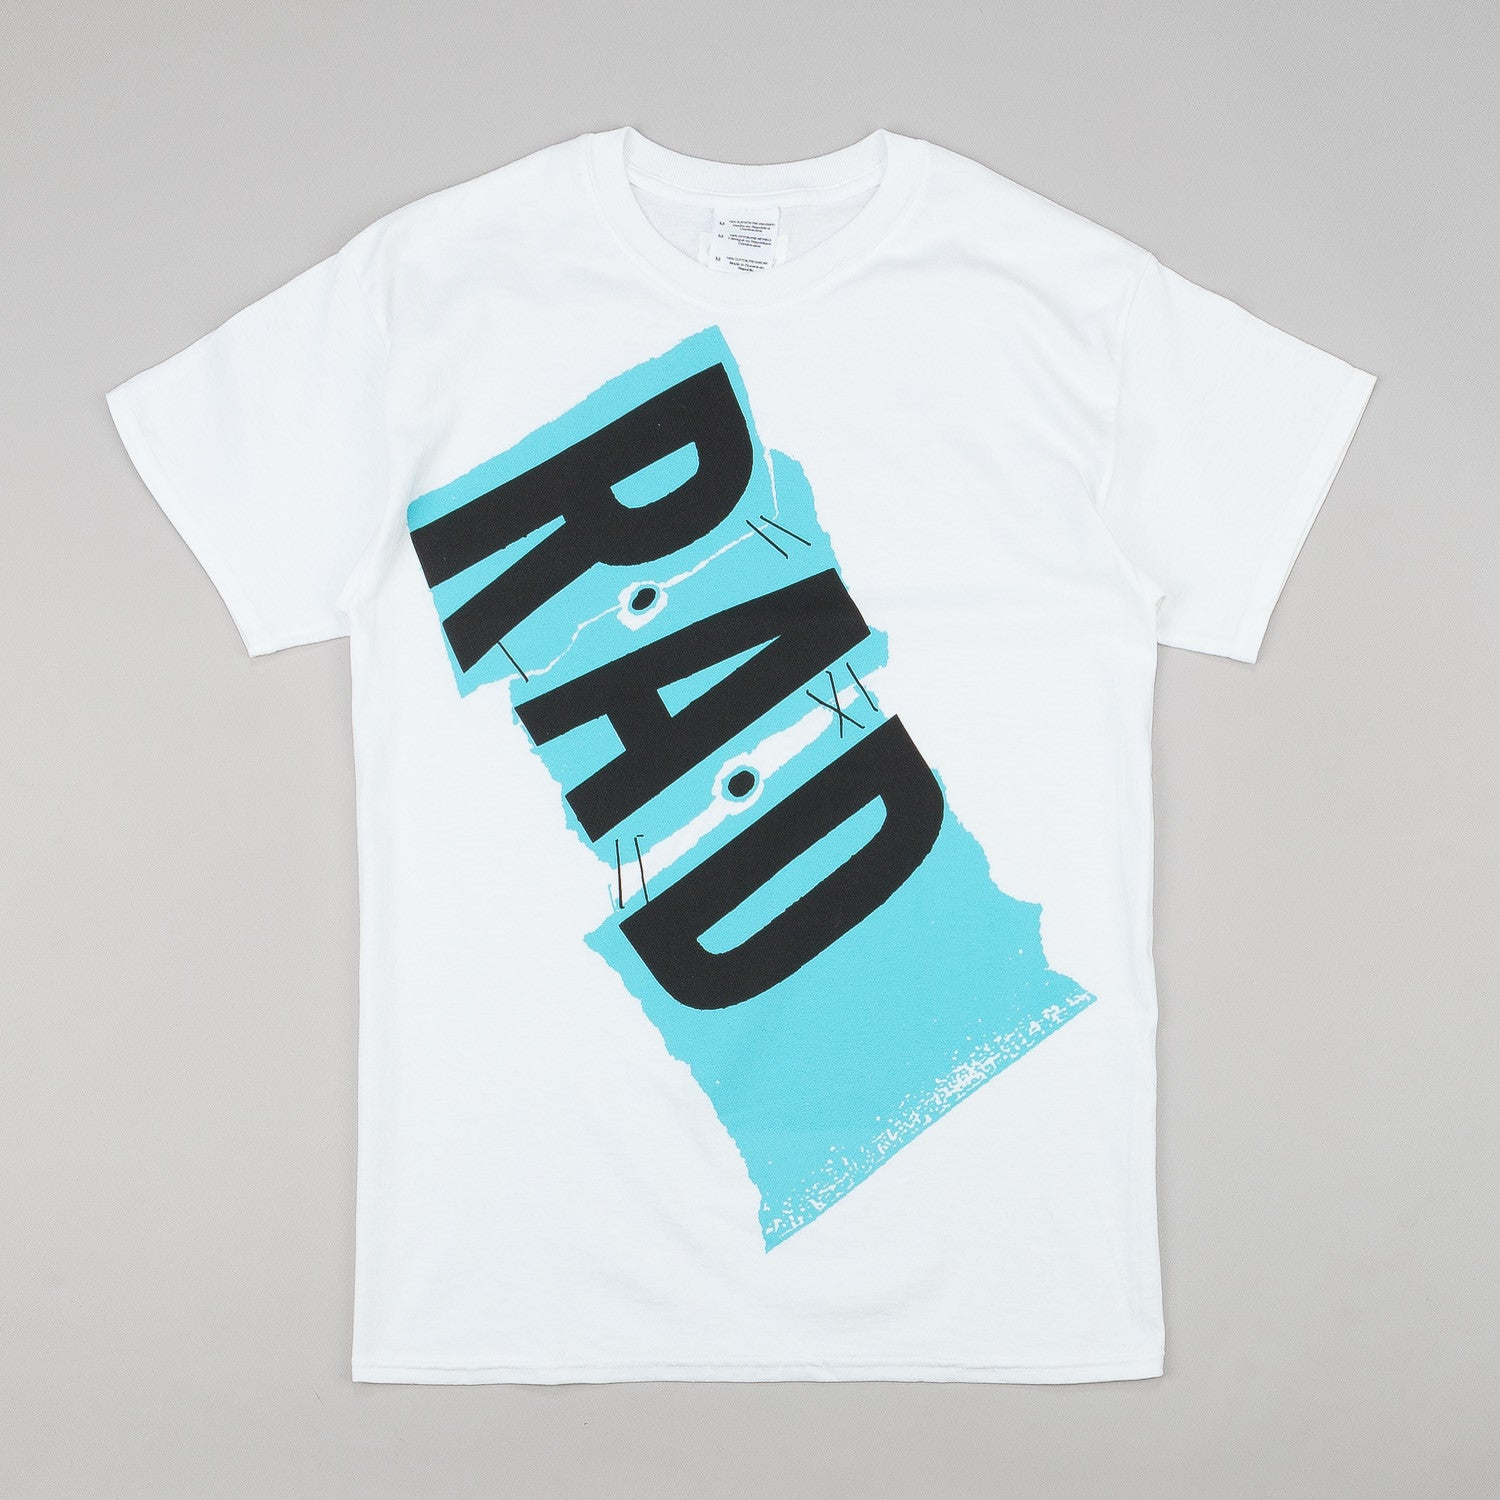 Dear Skating R.A.D. Magazine T-Shirt